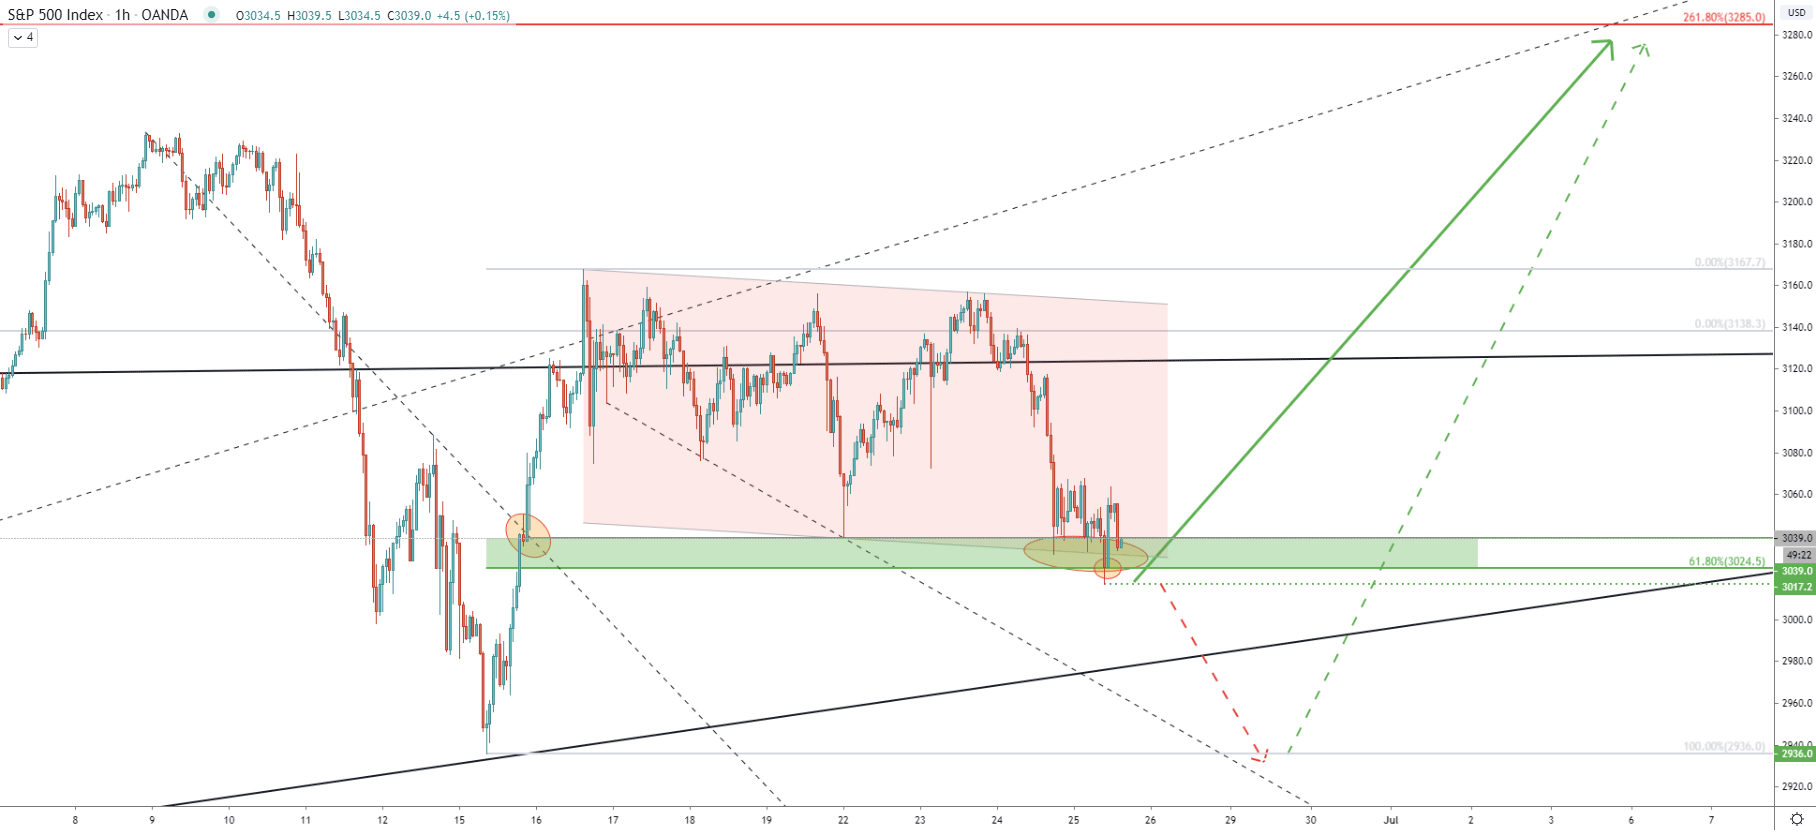 S&P500 1-Hour Technical Analysis 25 June 2020